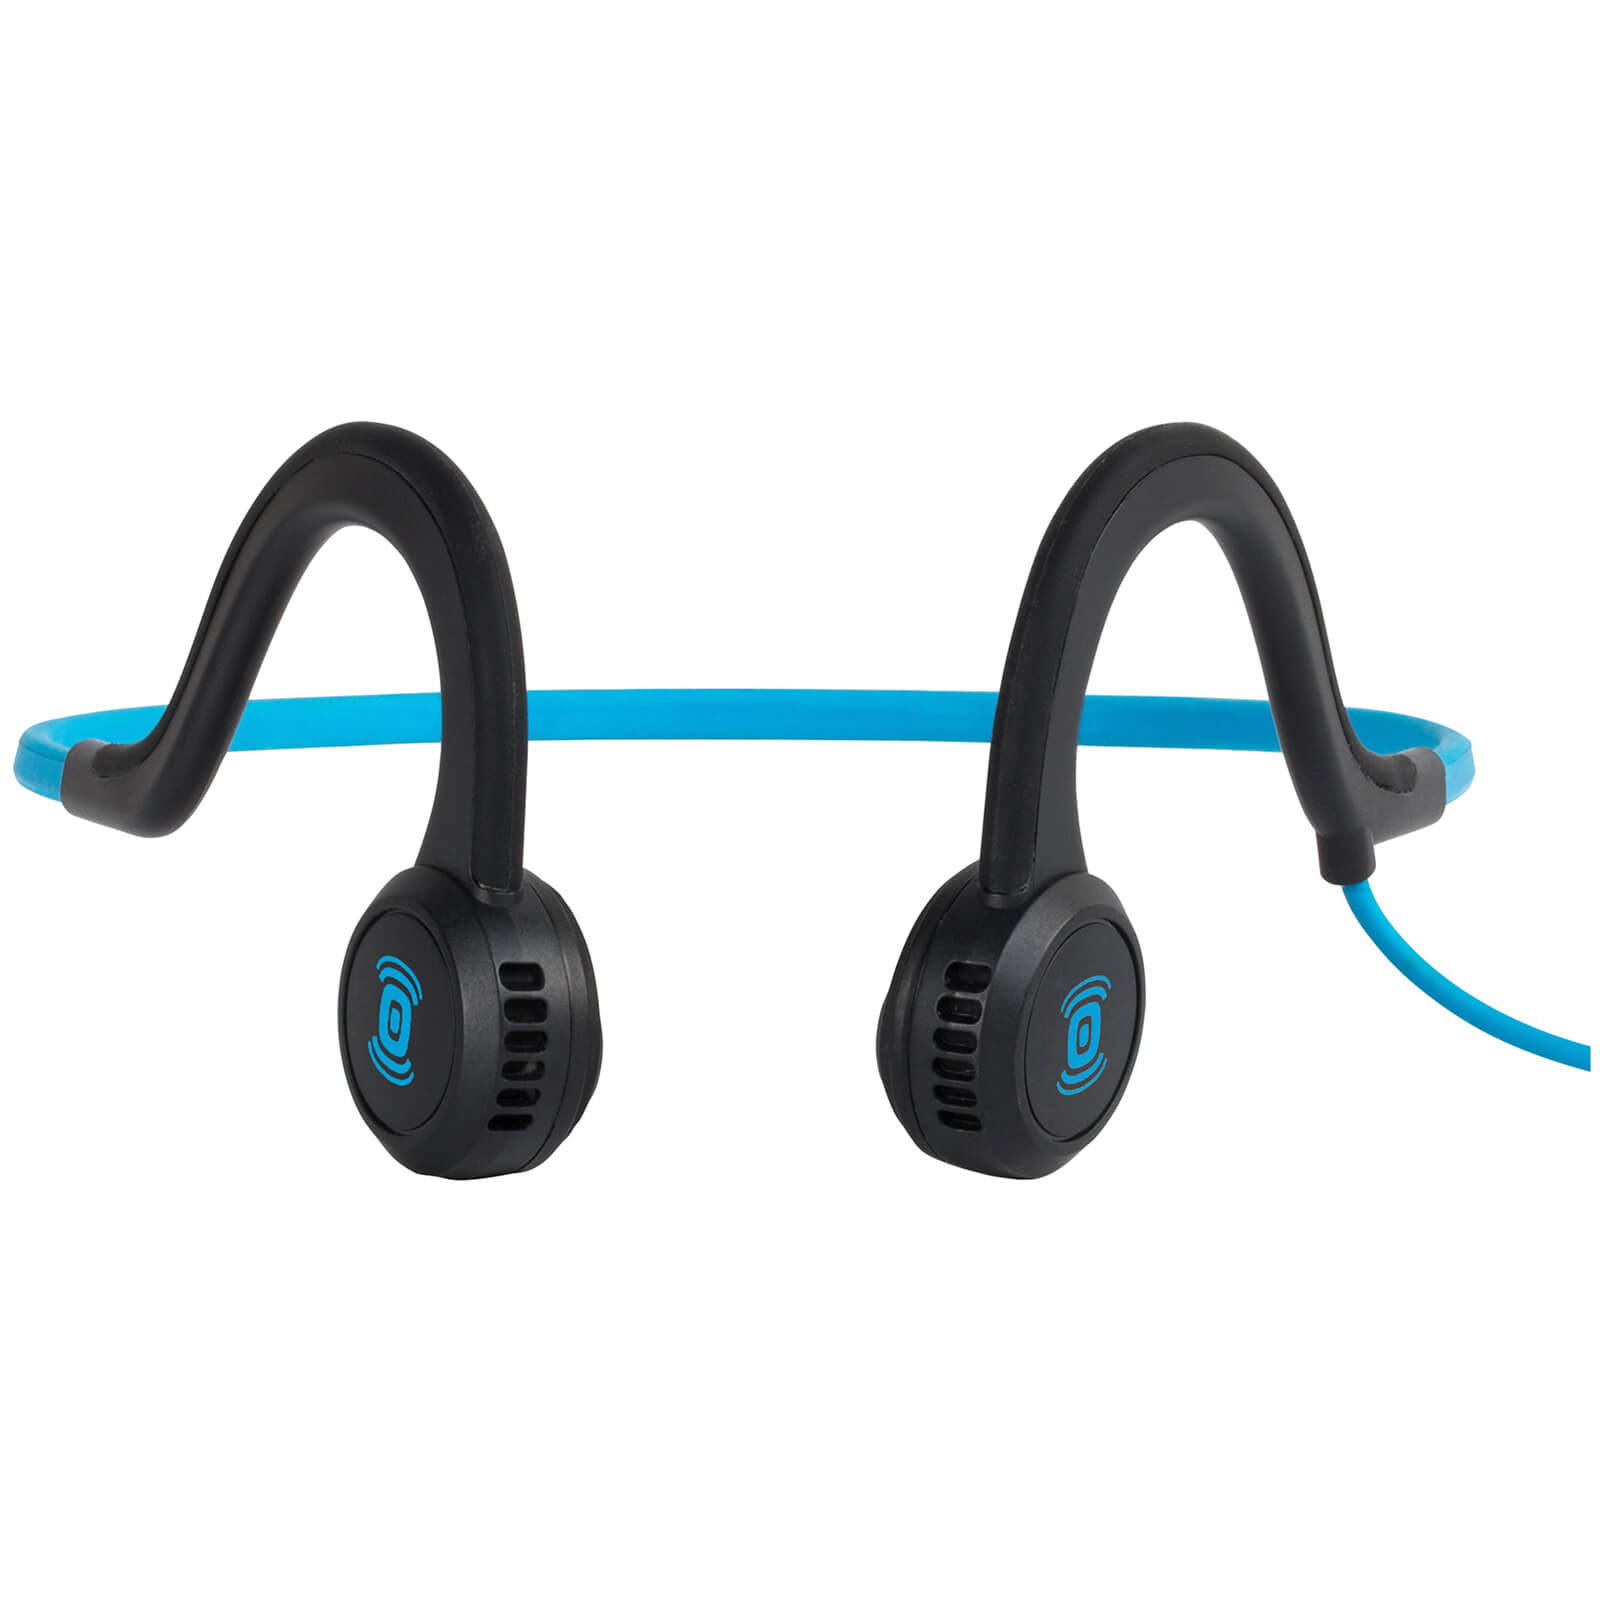 Aftershokz Sportz Titanium Headphones with Mic - Ocean